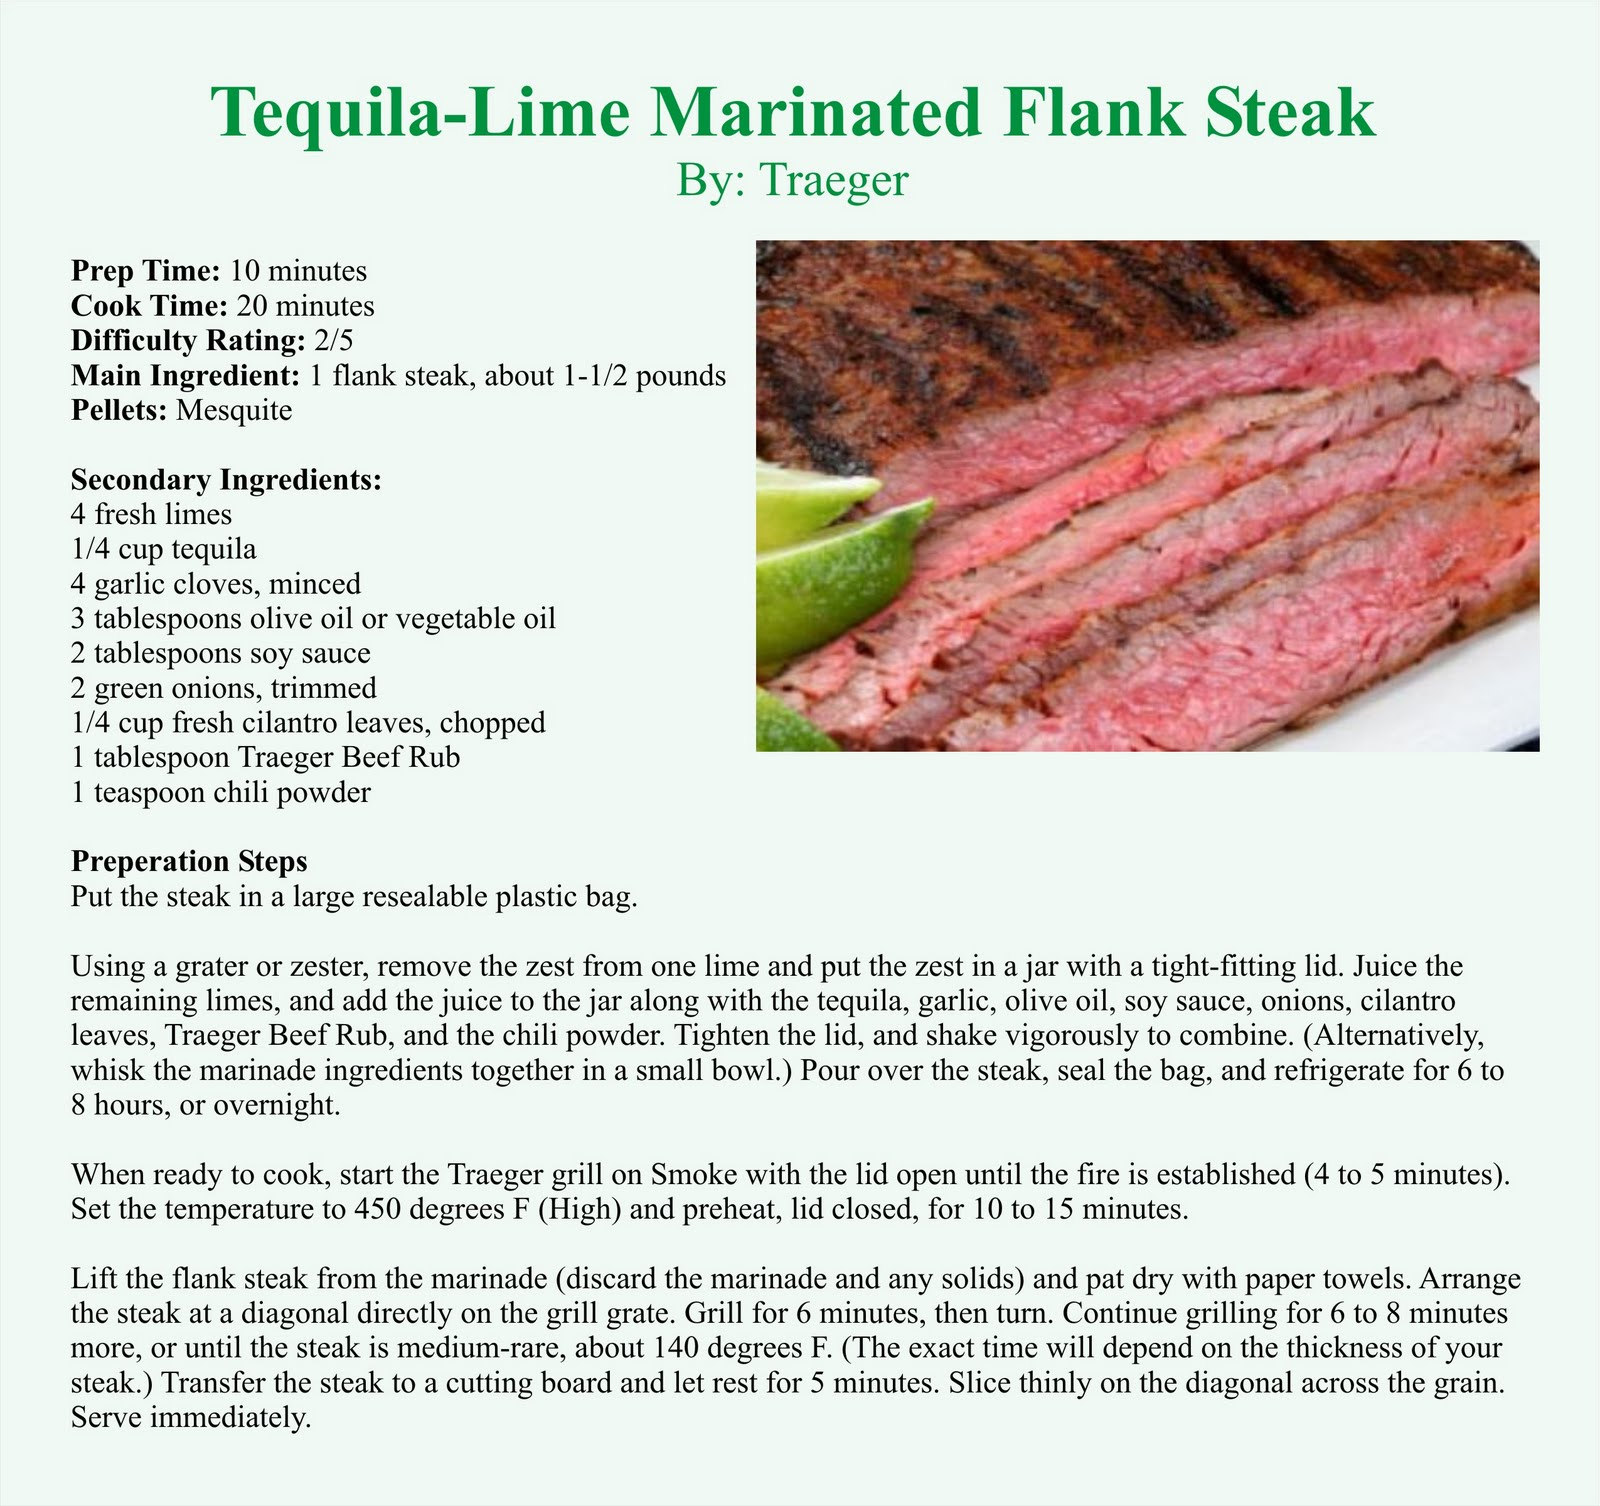 Traeger Grills: Tequila-Lime Marinated Flank Steak